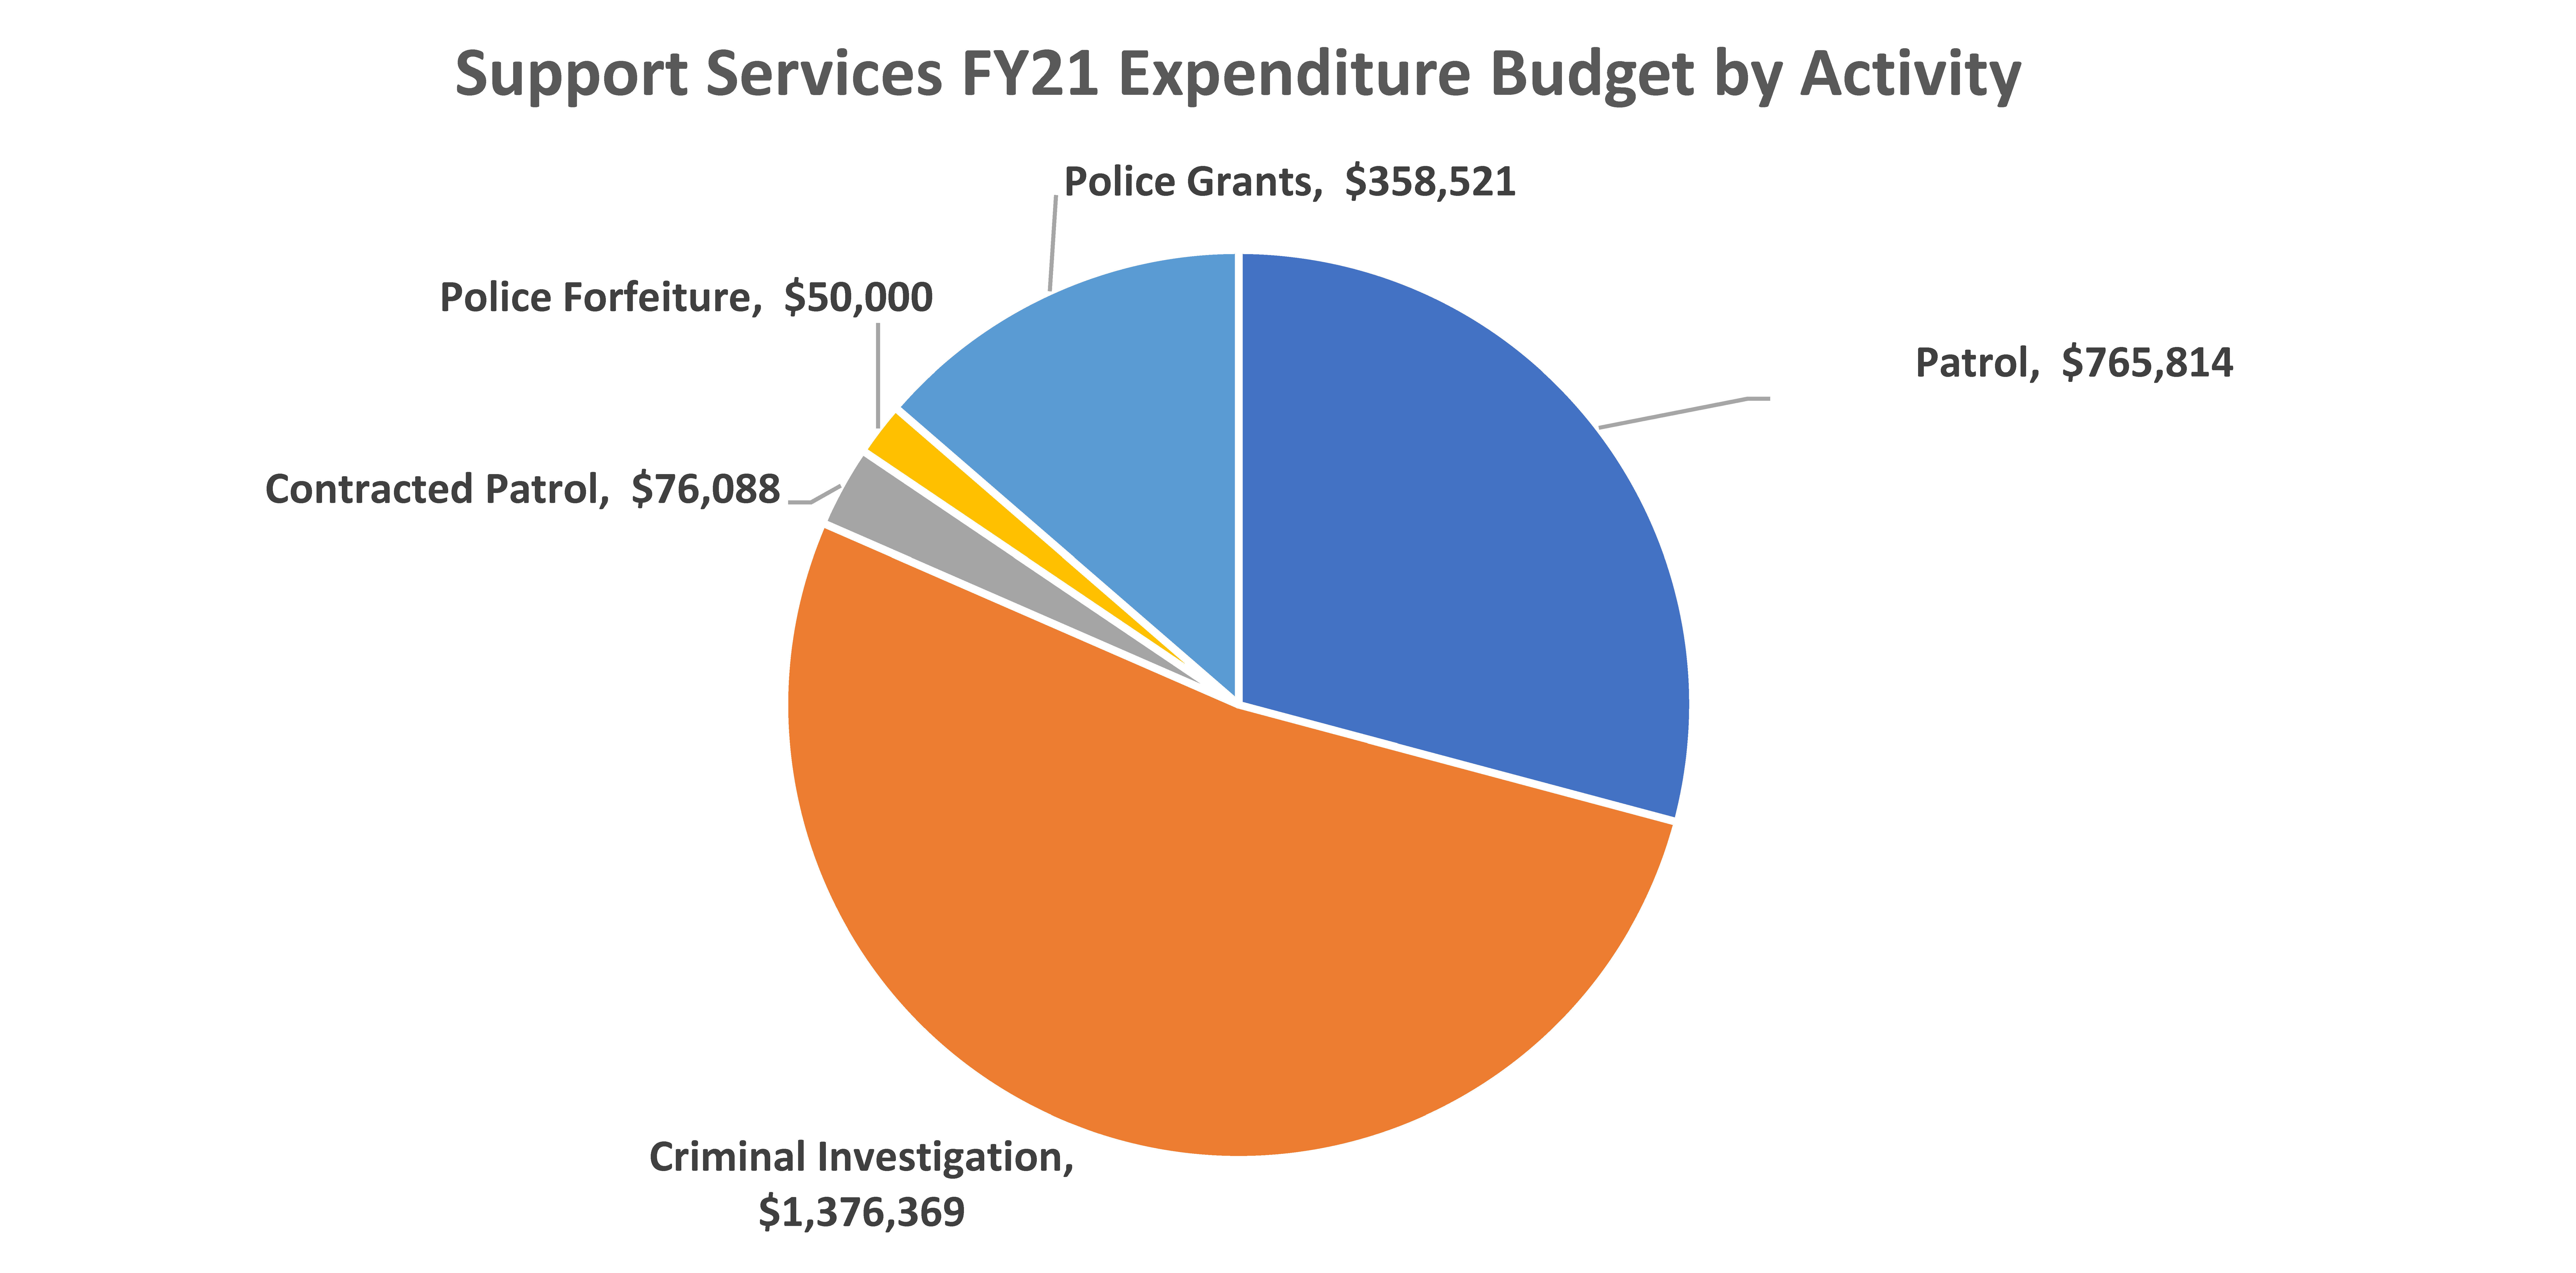 Police field operations expenses by activity